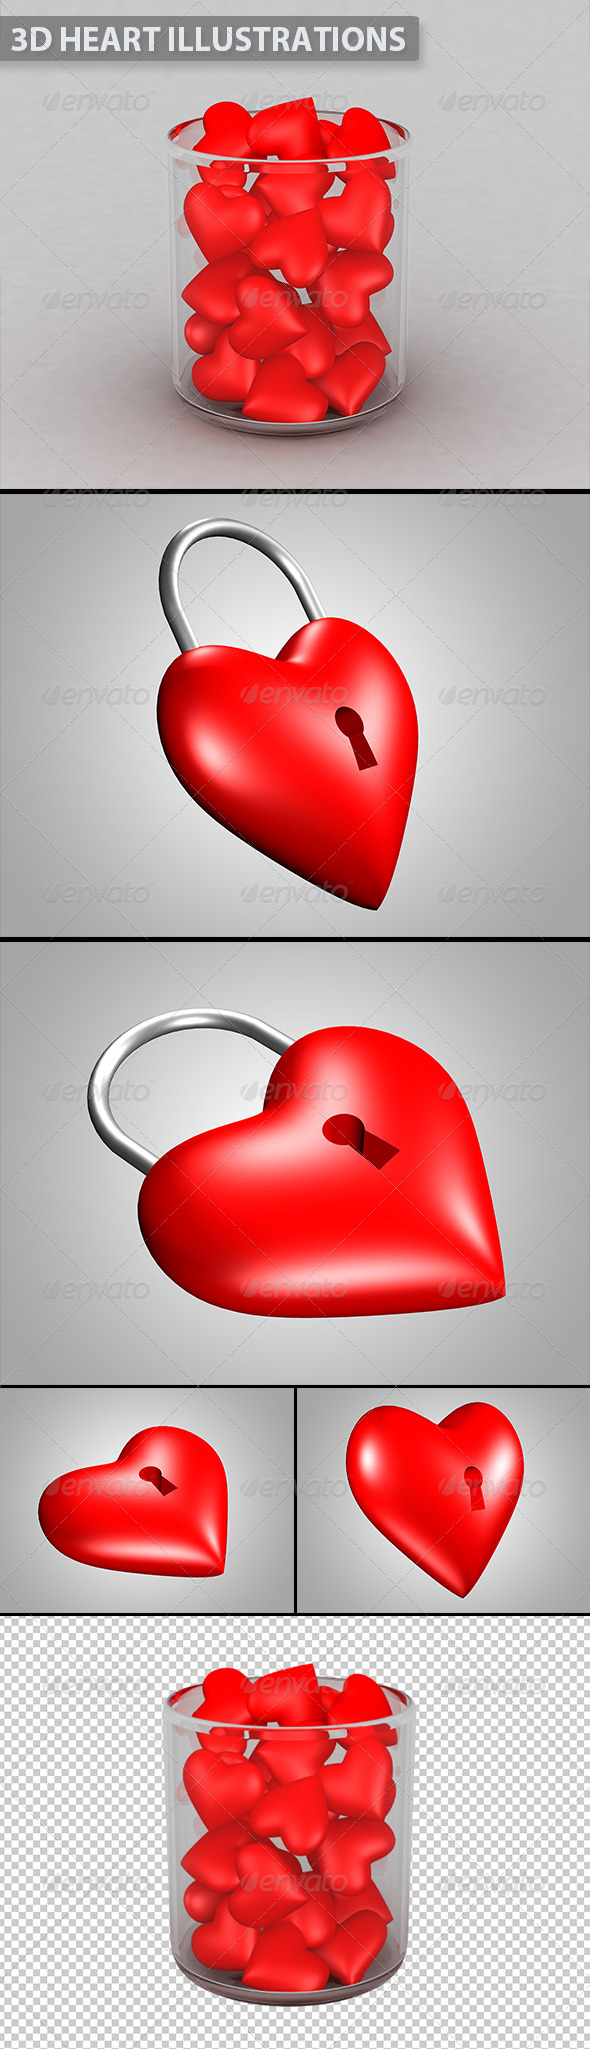 3D Valentine Heart Illustrations